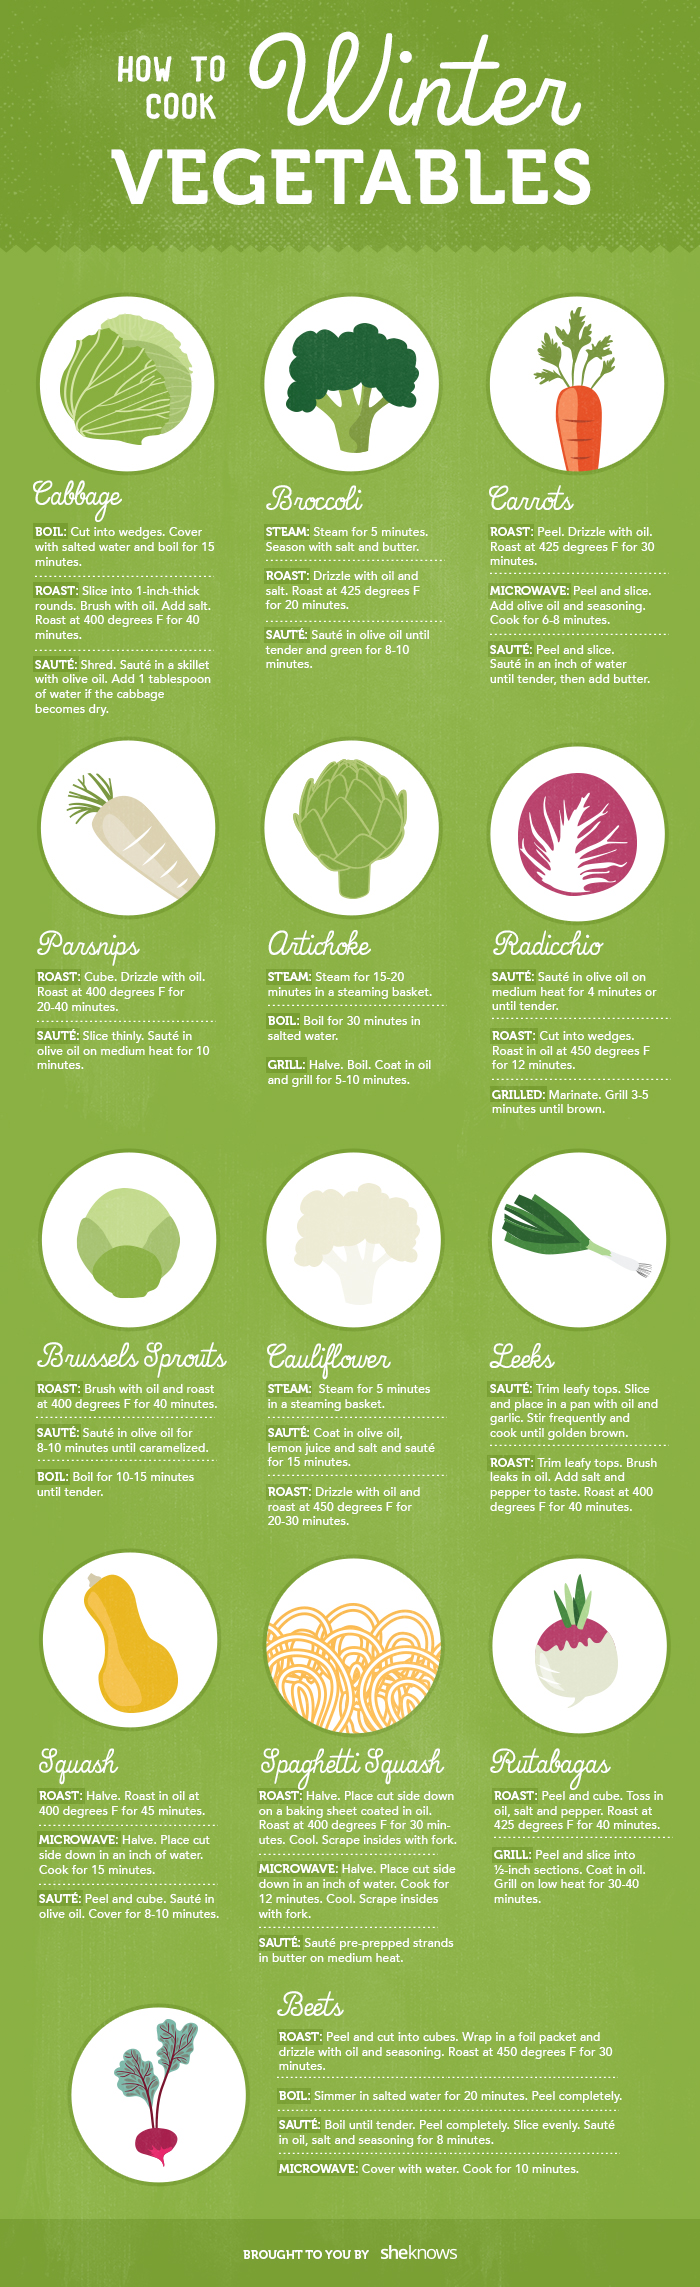 How to cook winter vegetables